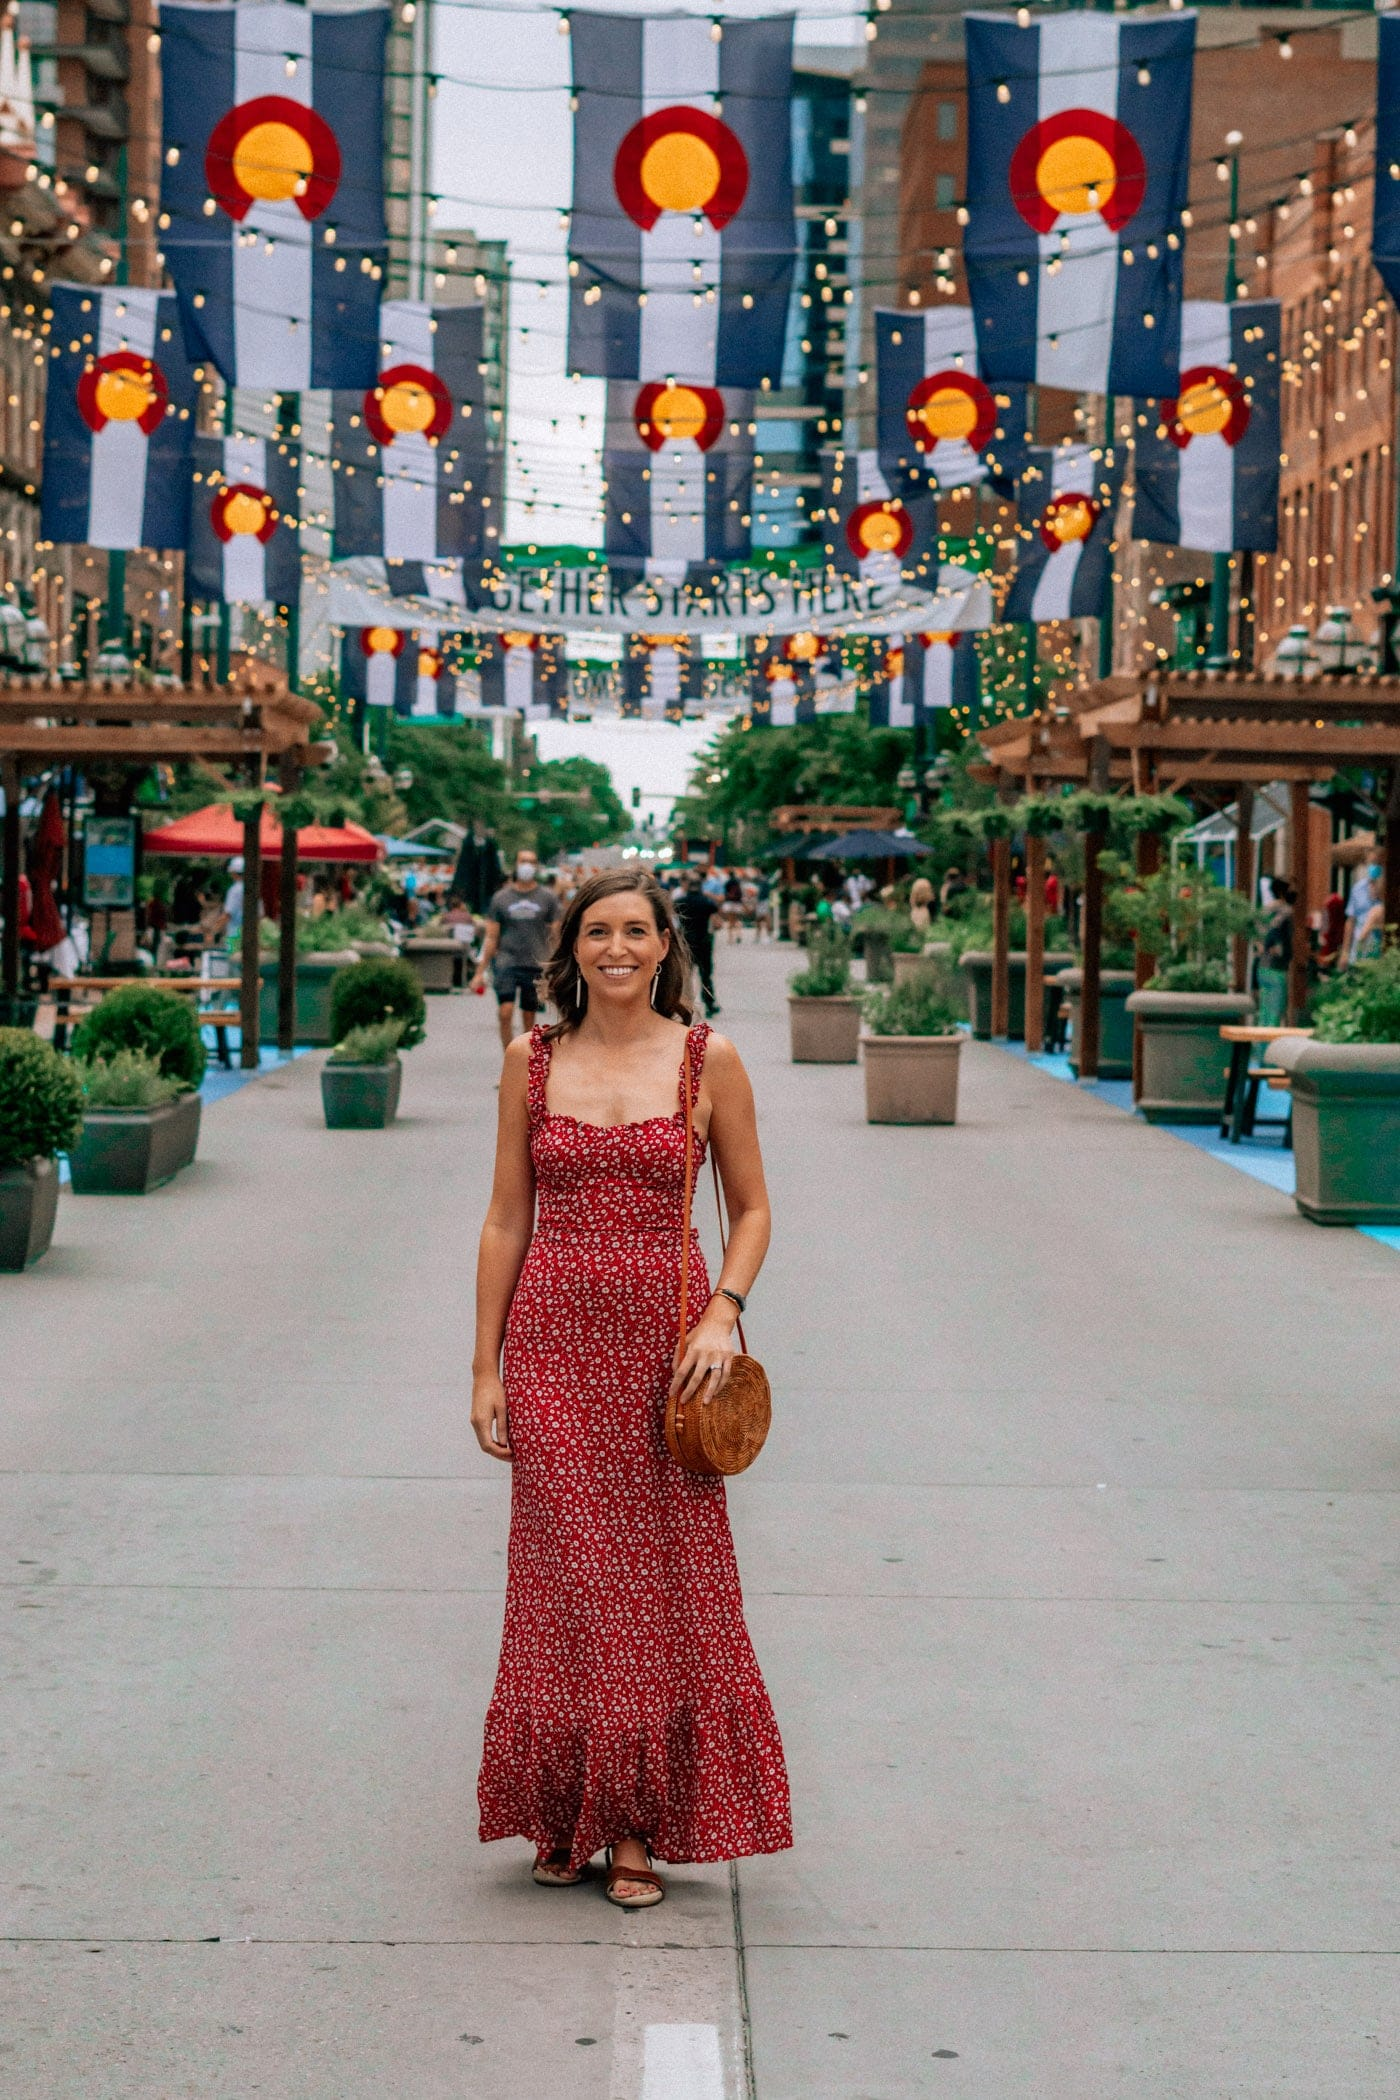 Red Maxi Dress on Larimer Square